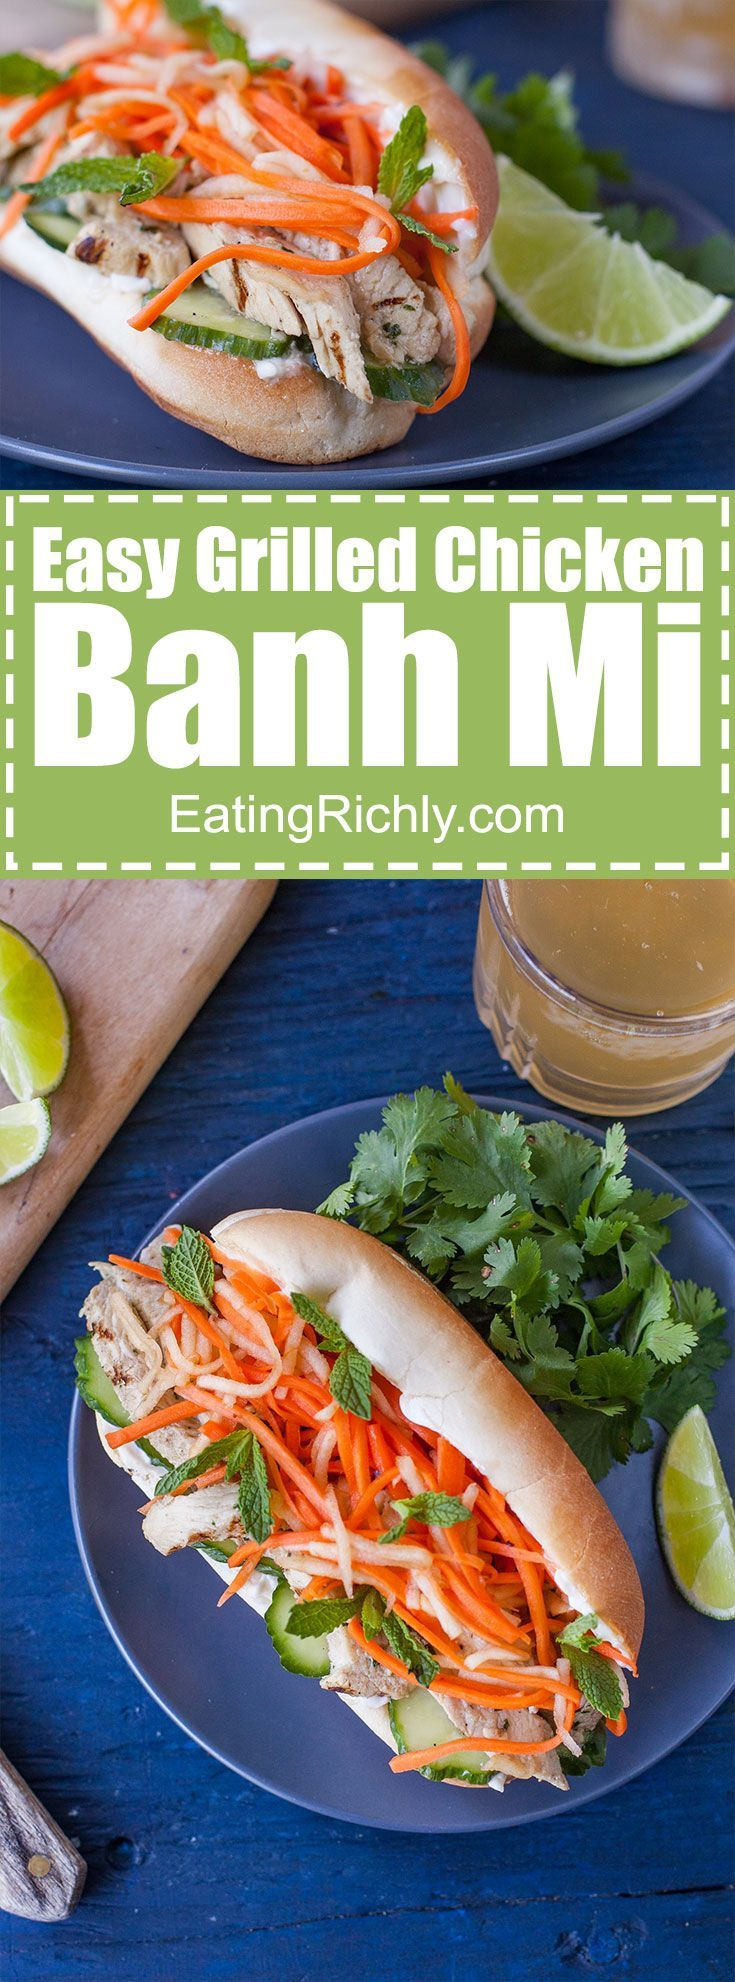 This Vietnamese sandwich recipe is an authentic grilled chicken banh mi packed with exciting flavors, colors and textures. And it's SO easy to make! From EatingRichly.com via @eatingrichly